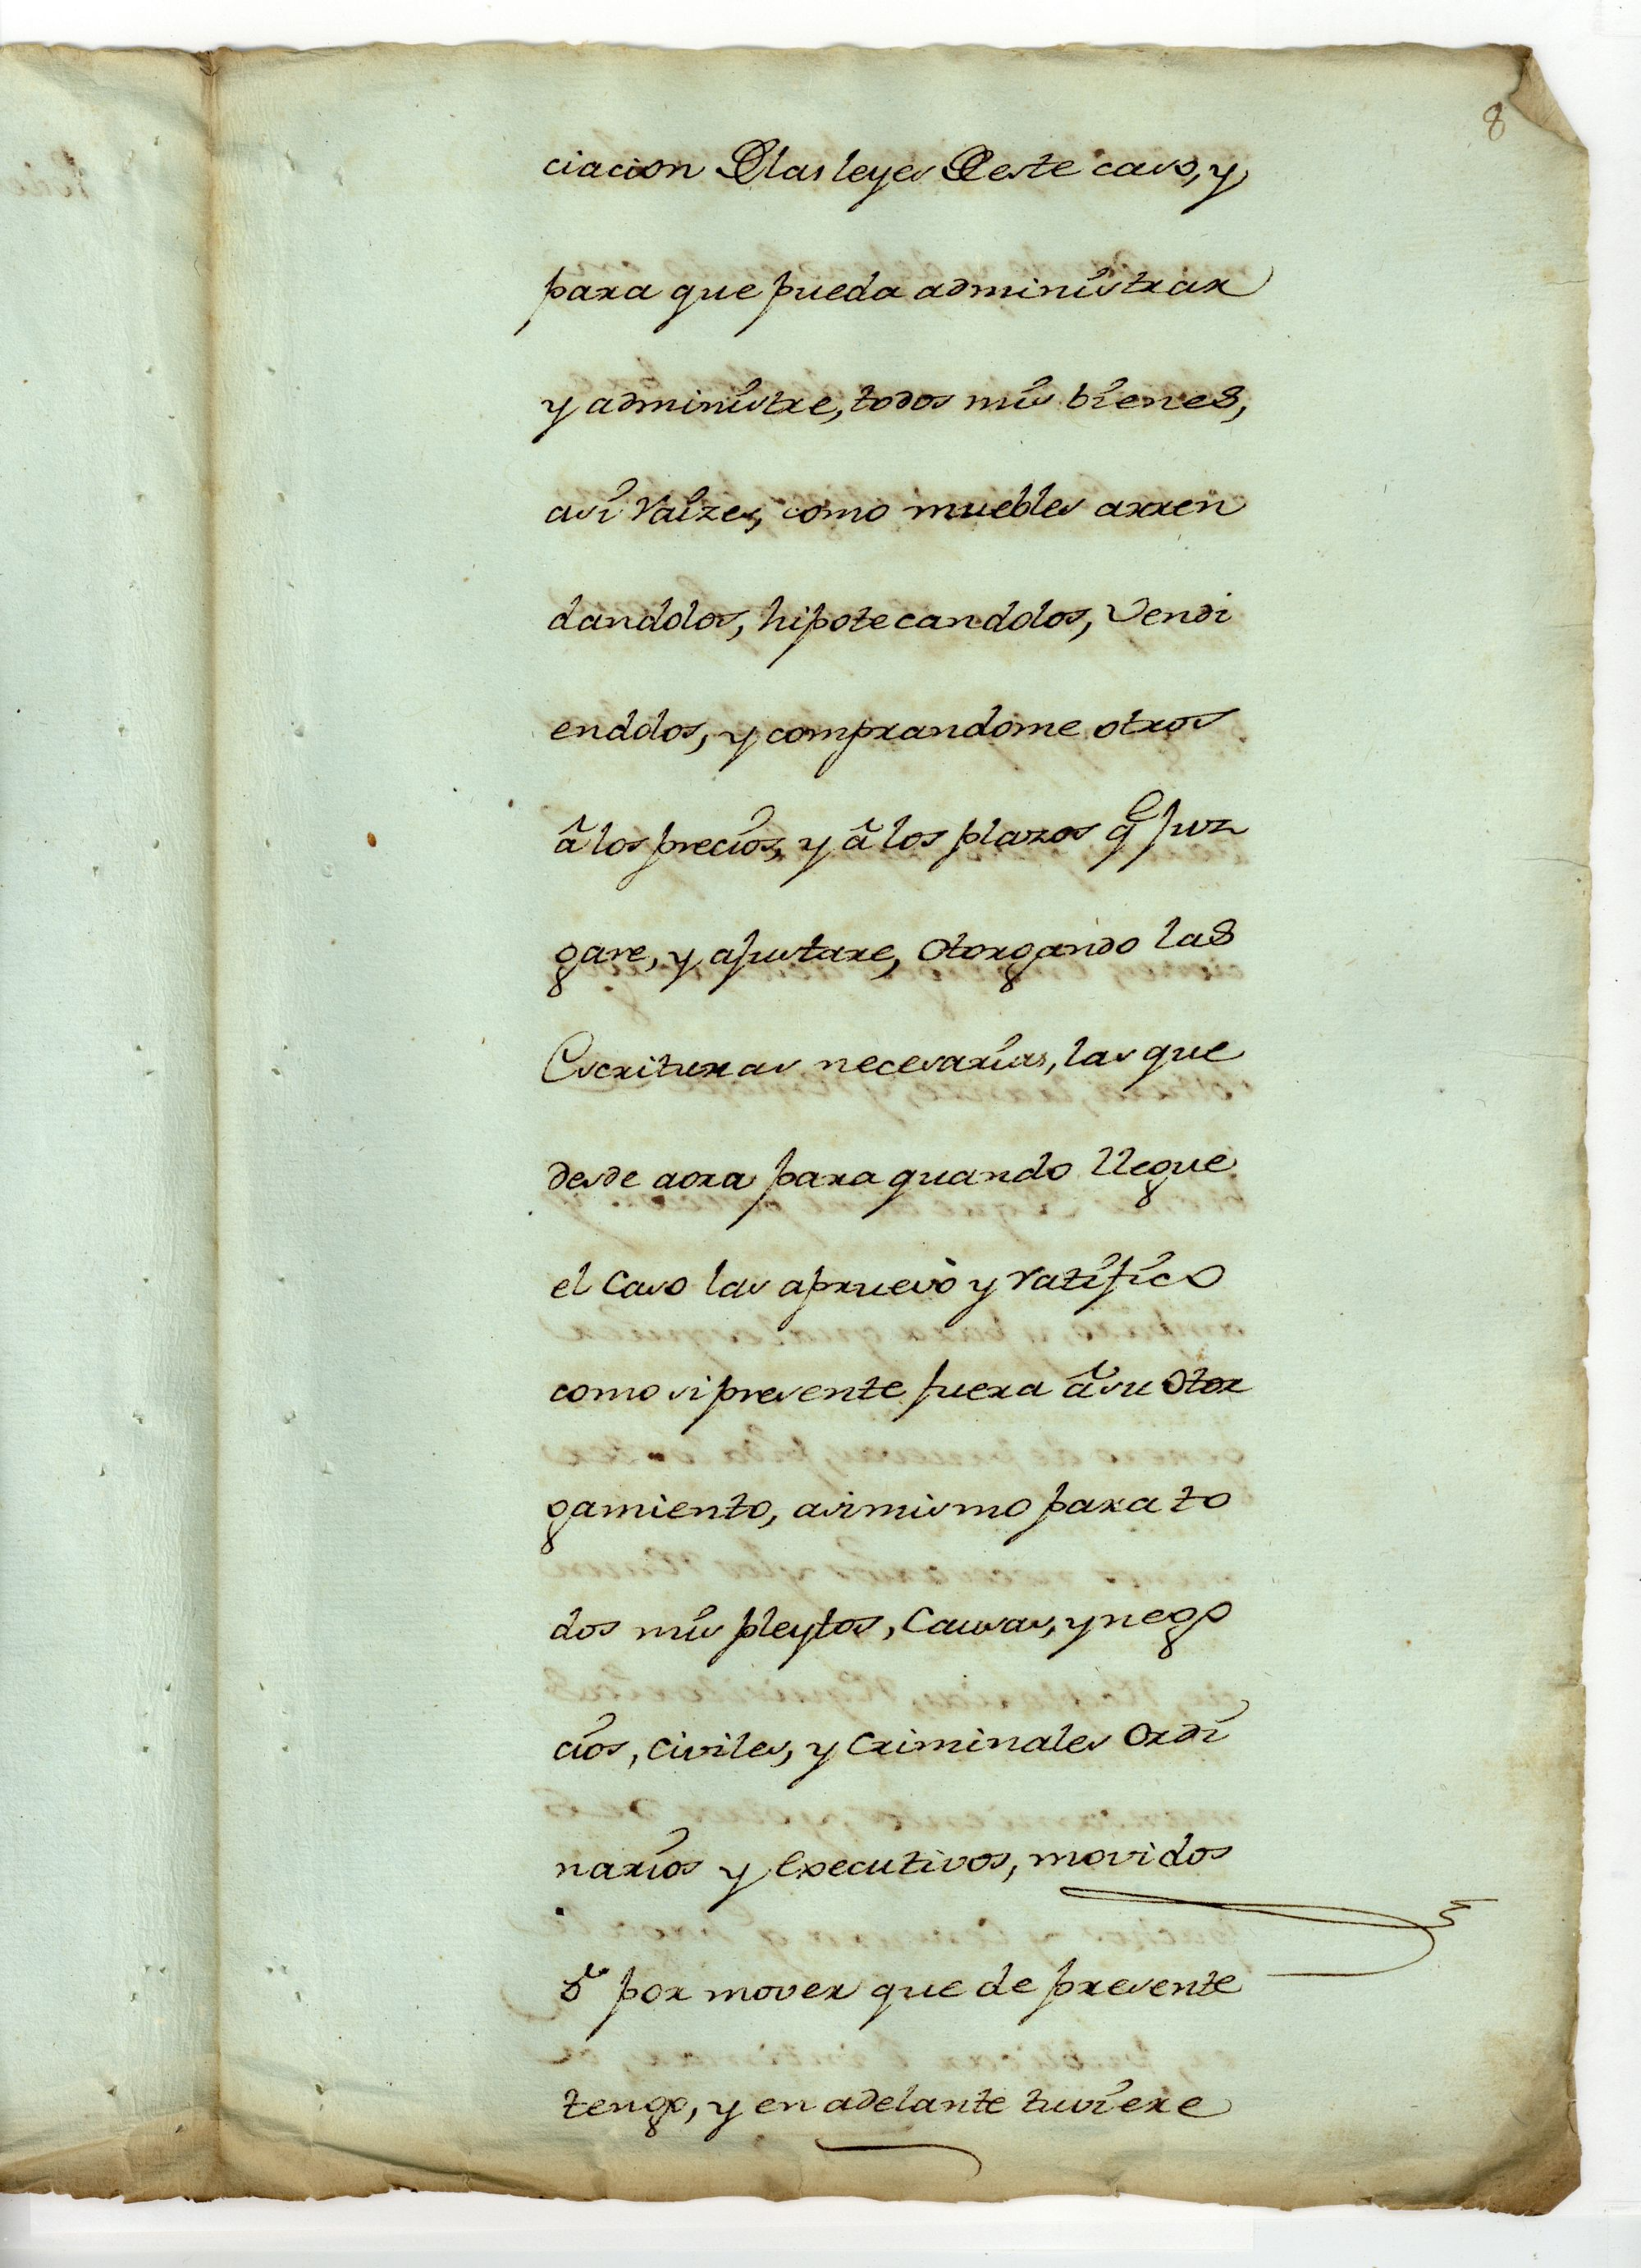 Muebles Baza Document 1790 01 27 02 Louisiana Colonial Documents